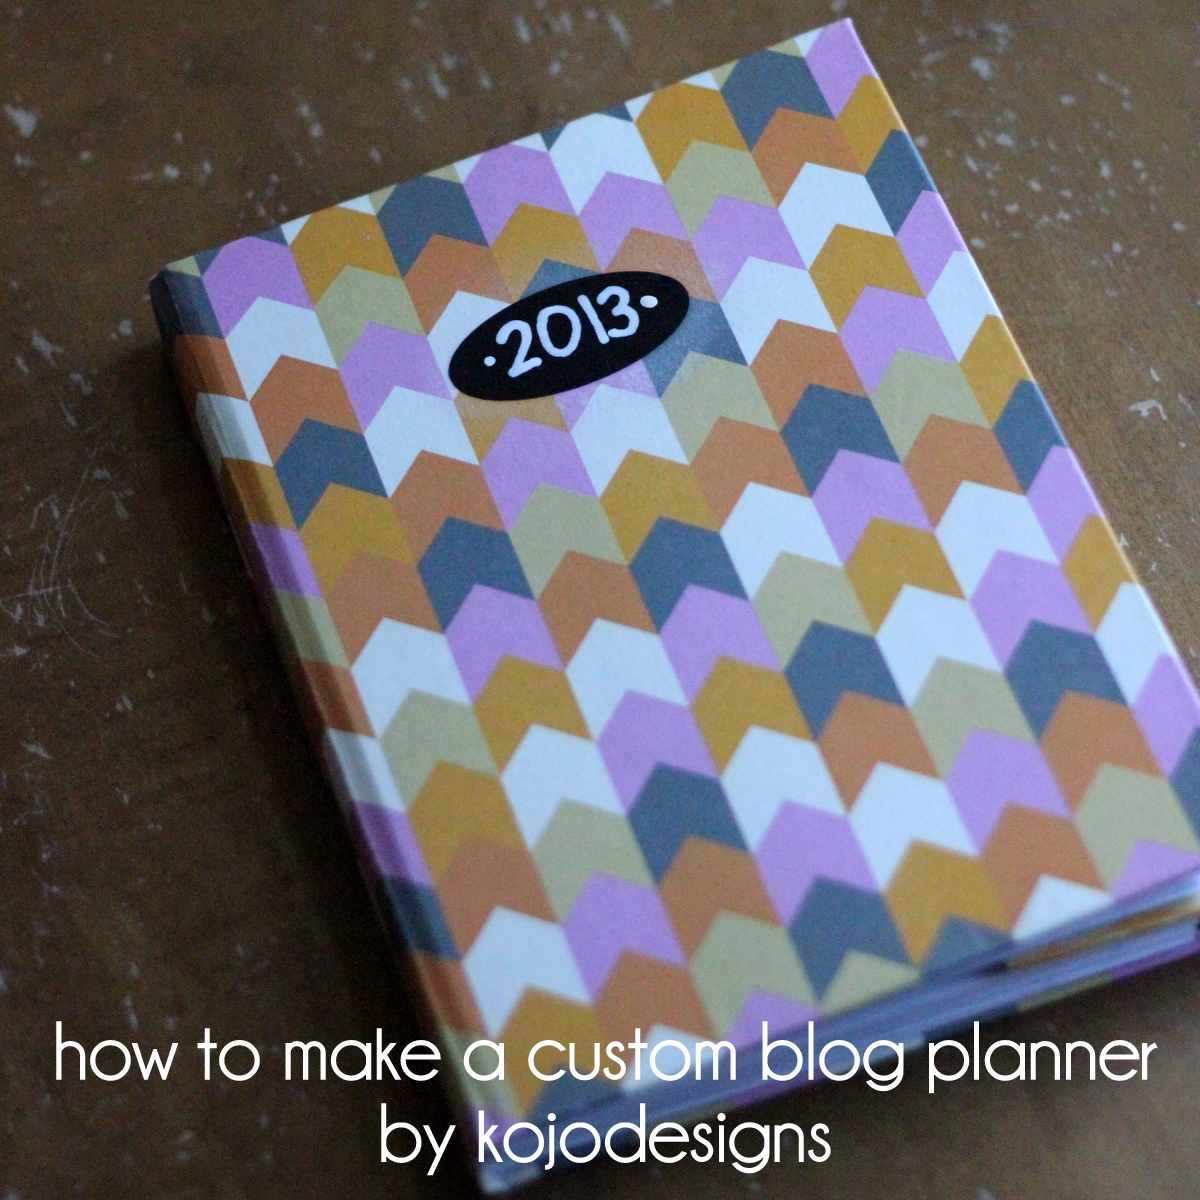 how to make a custom blog planner using an already existing journal or book